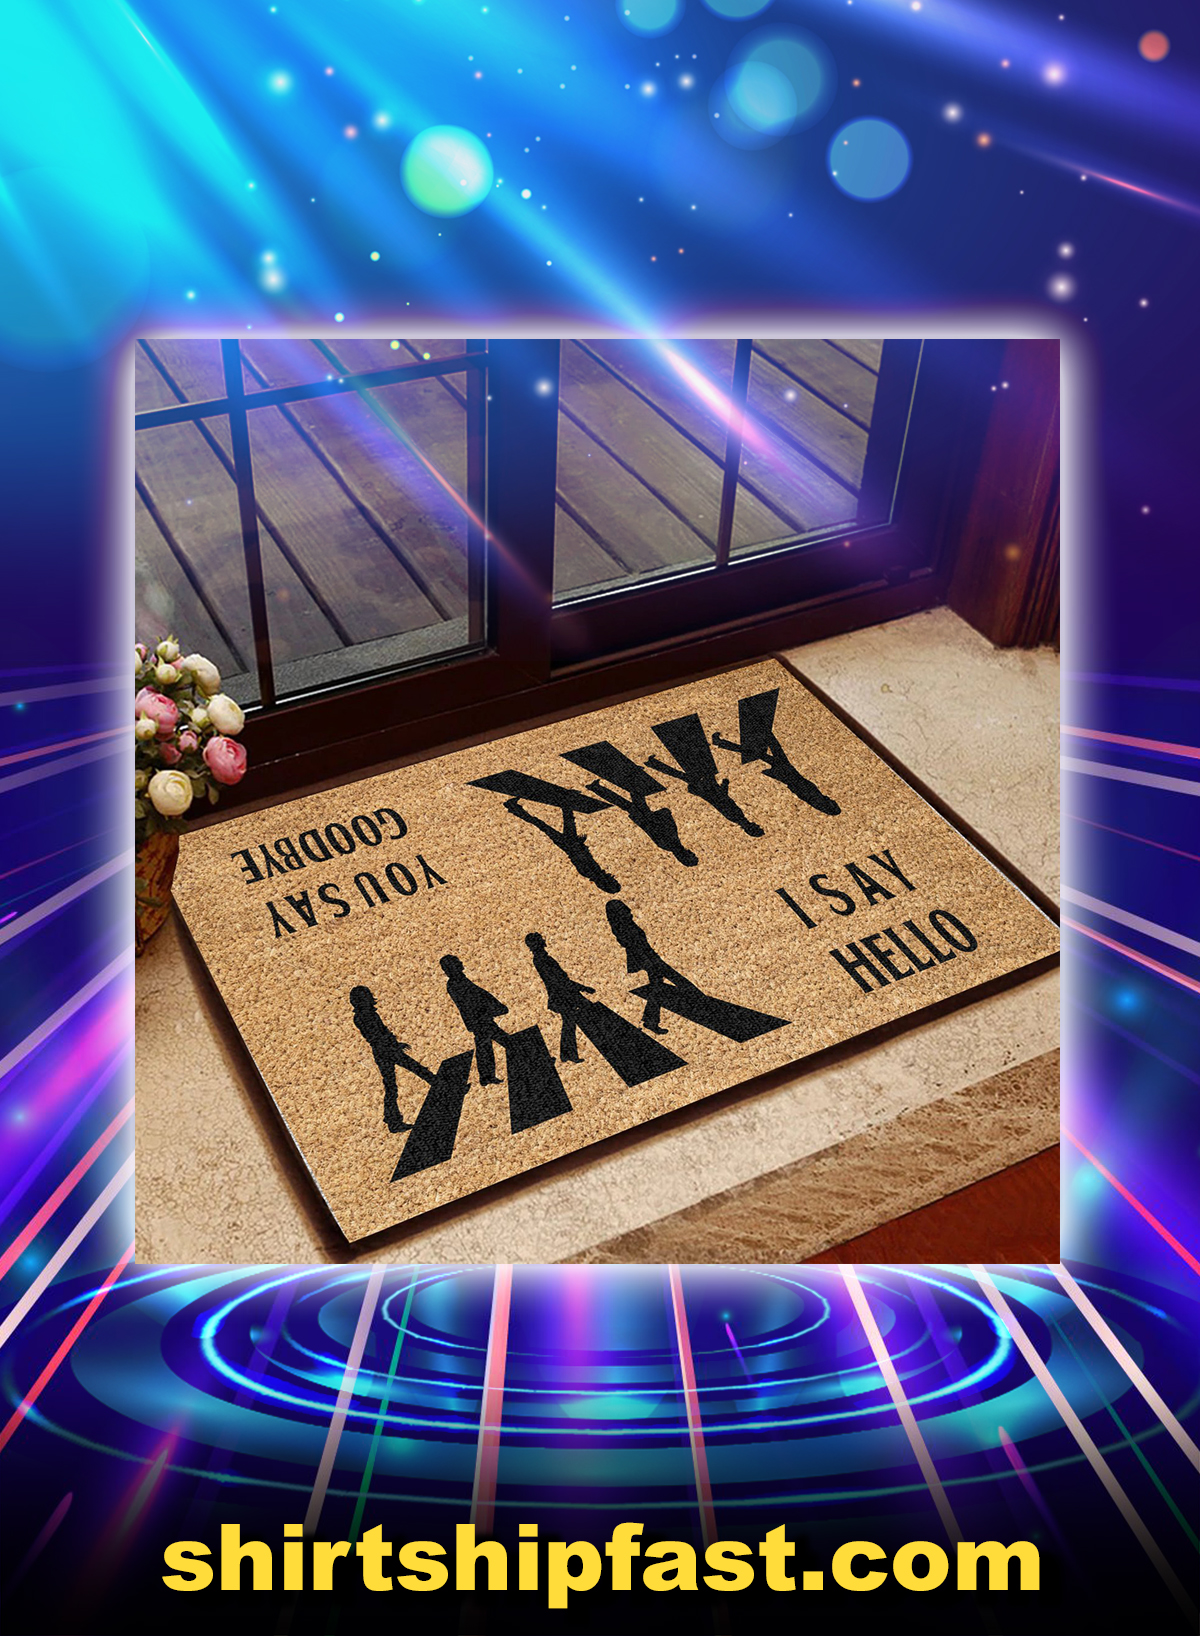 The Beatles abbey road I say hello you say goodbye doormat - Picture 1